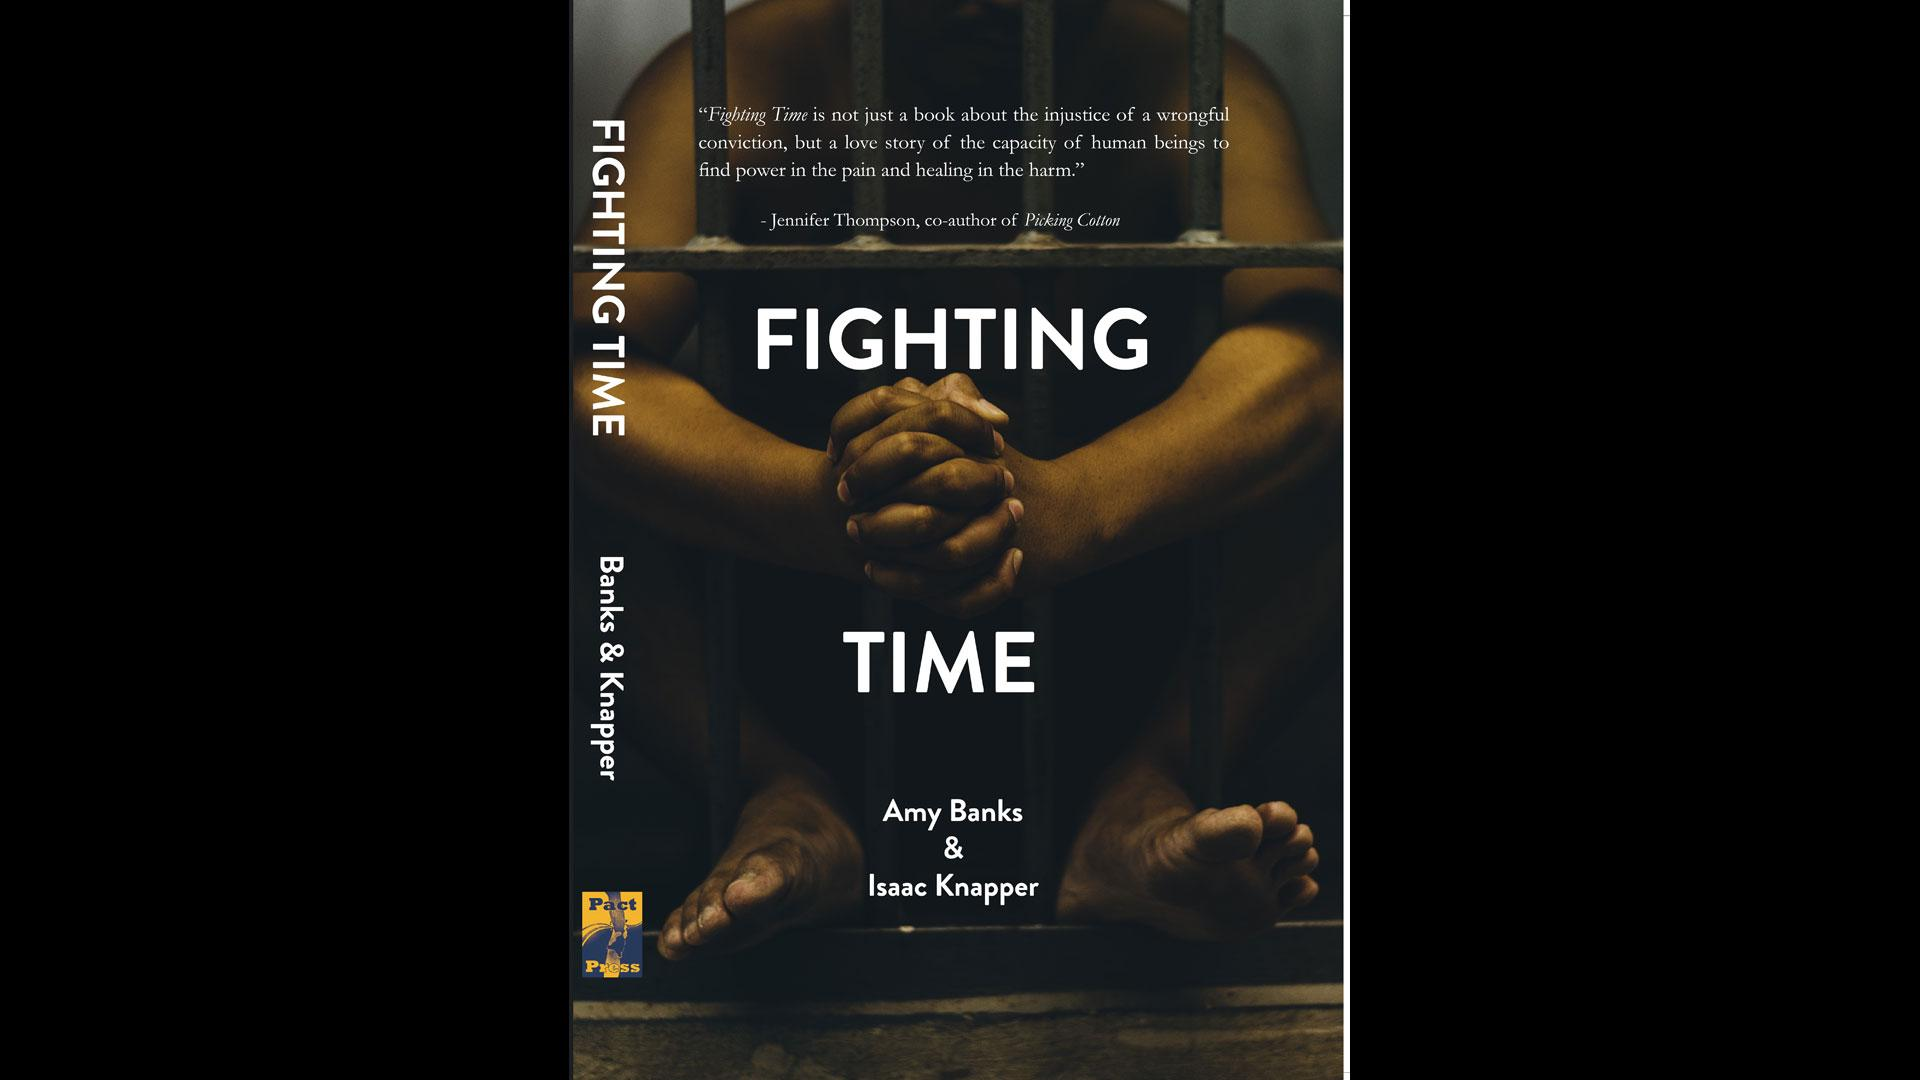 Fighting Time - a talk with Isaac Knapper and Amy Banks